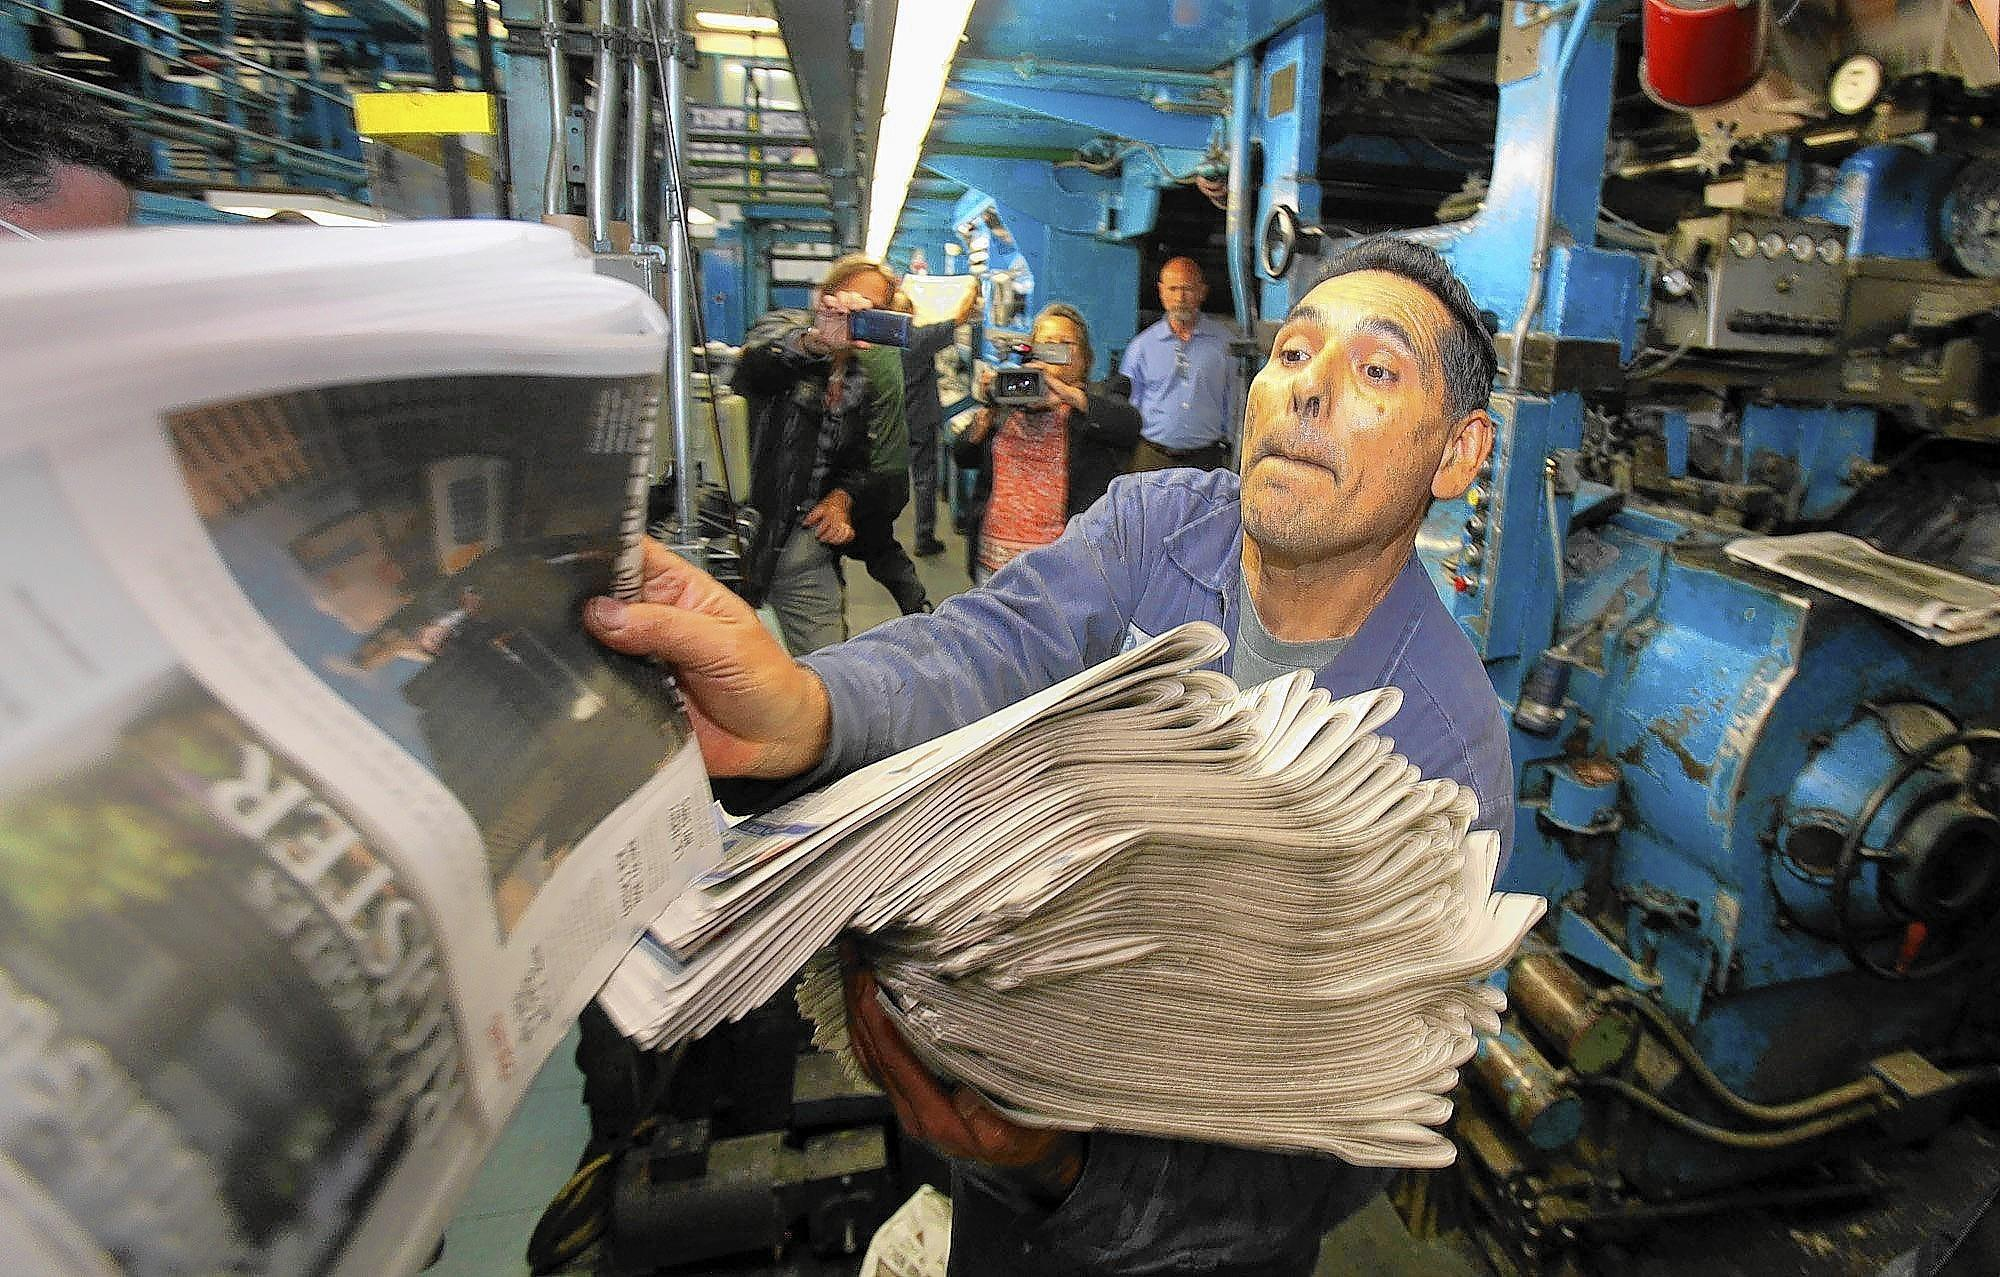 The L.A. Register, which will be sold at more than 5,500 retail outlets and vending machines, is the first new daily newspaper to launch in the city since the Los Angeles Daily News gradually turned into a daily in 1981. Above, workers check the first copies of the Register's inaugural edition at the newspaper's printing facility in Santa Ana.